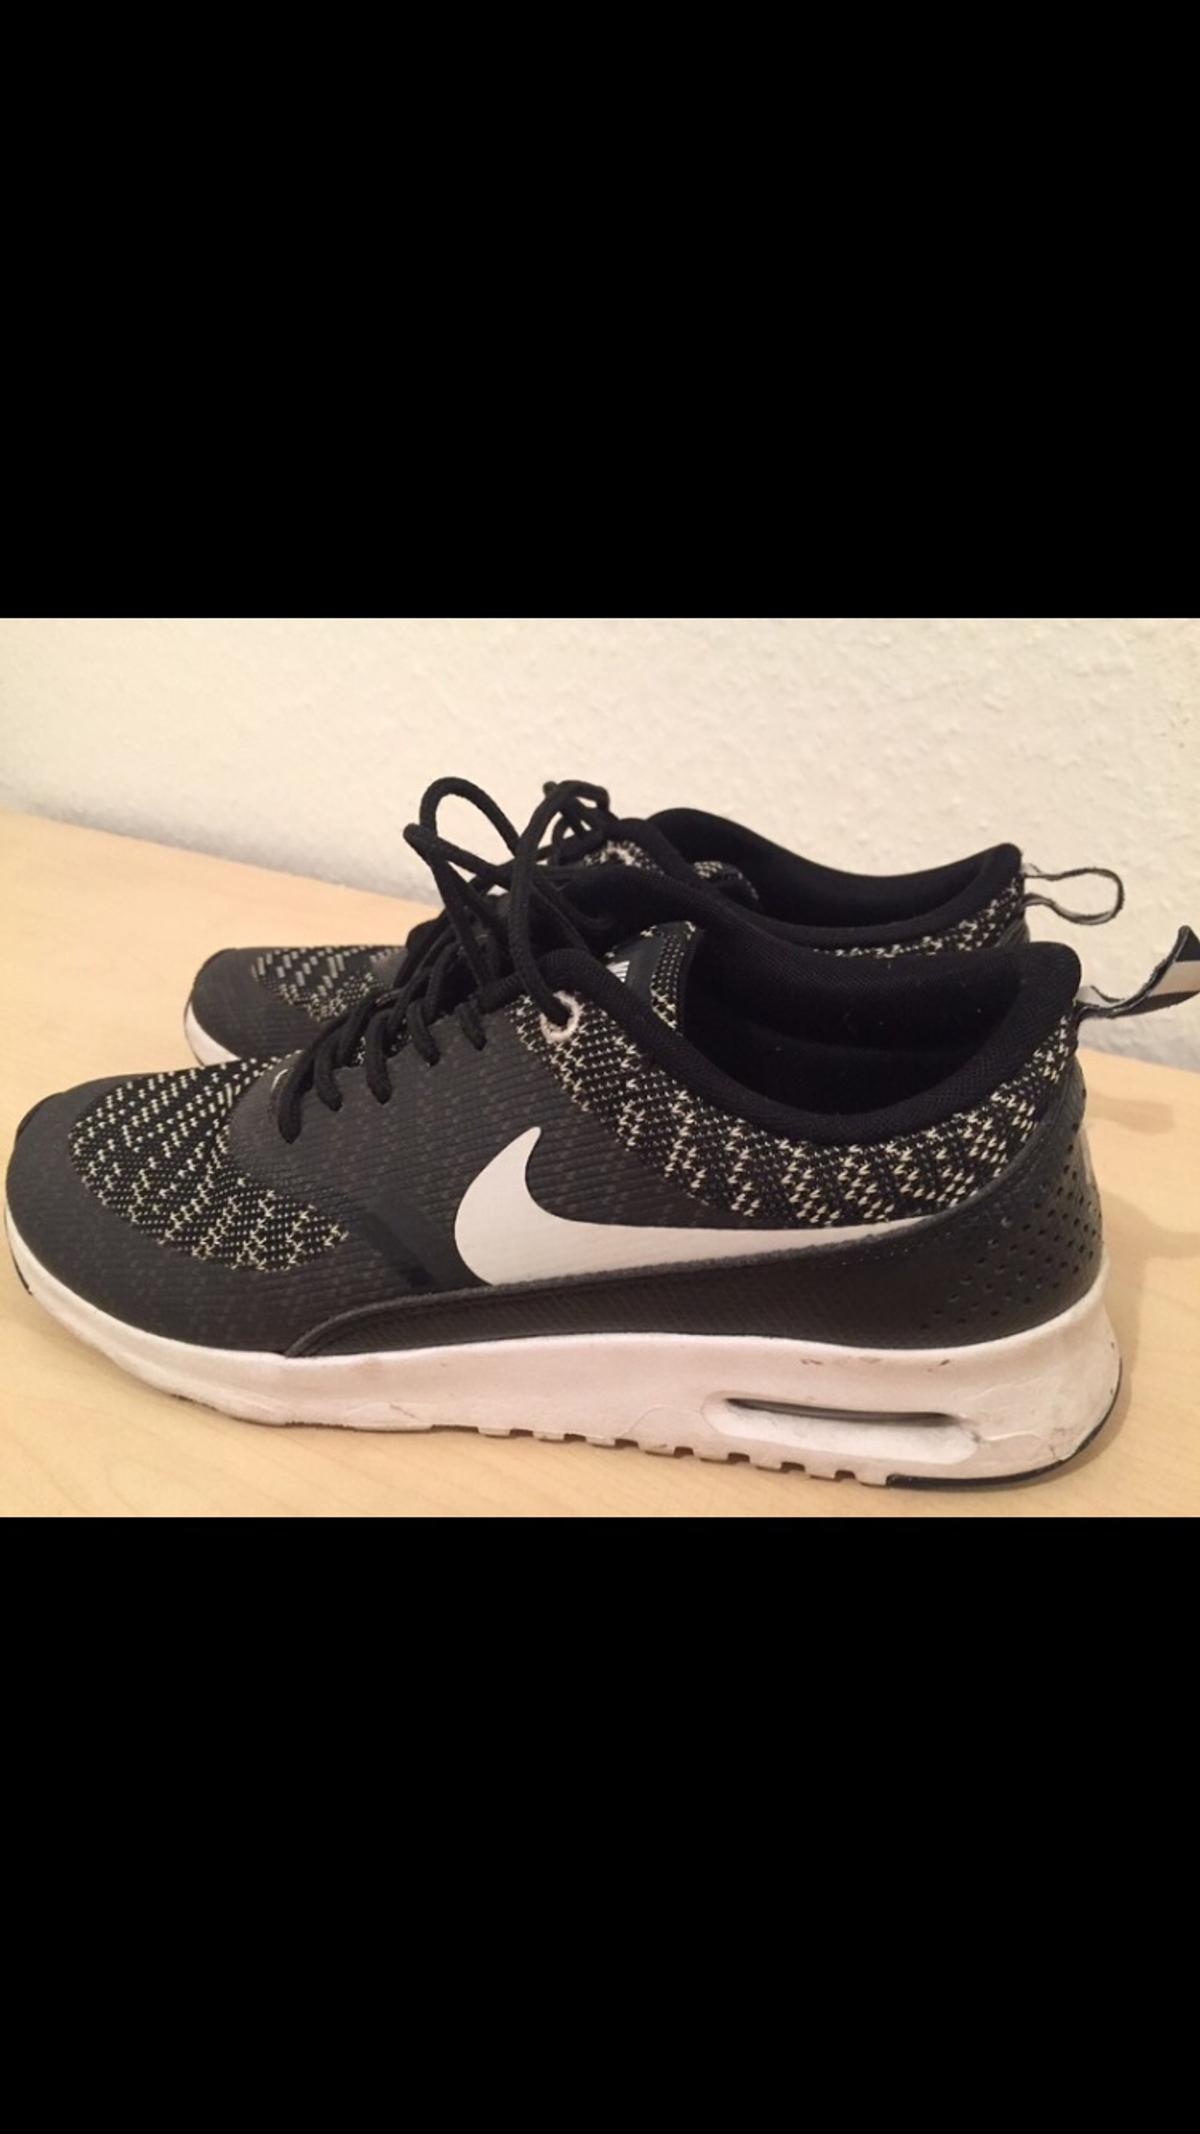 476cb89d75e55 Nike Thea schwarz weiß (40) in 76532 Oos for €55.00 for sale - Shpock